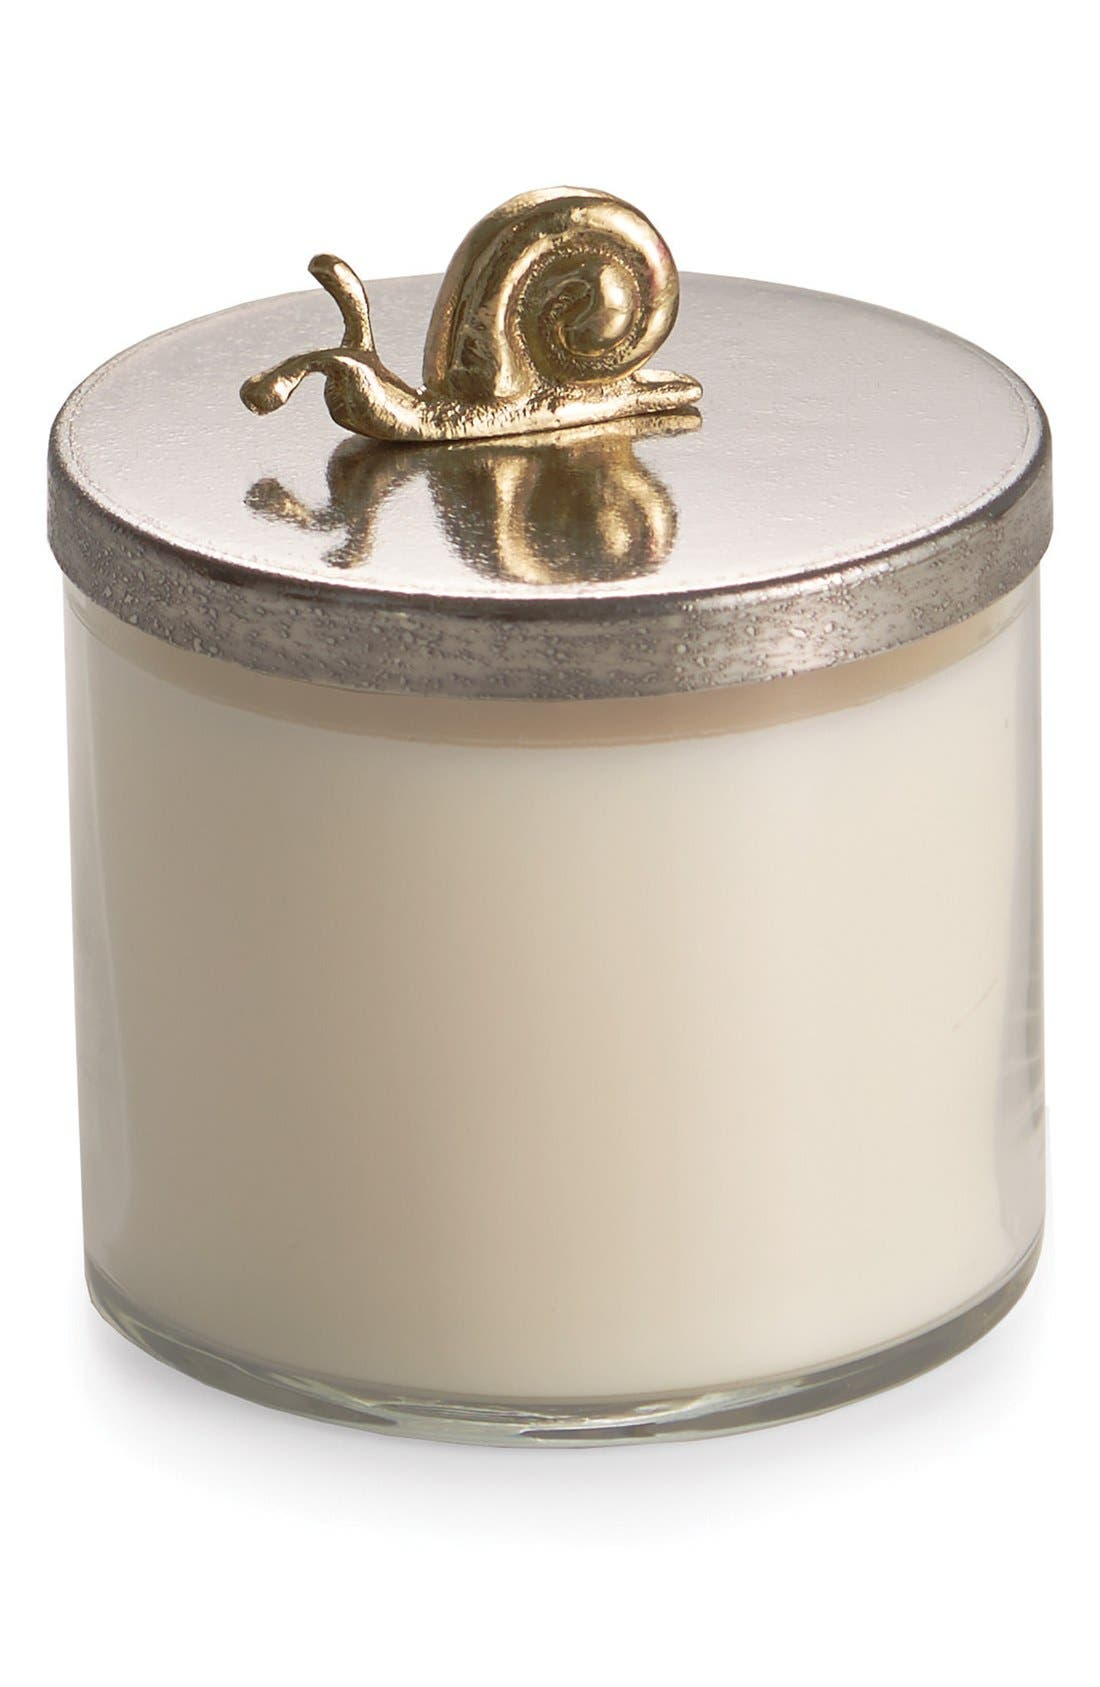 MICHAEL ARAM 'Enchanted Garden' Soy Wax Candle